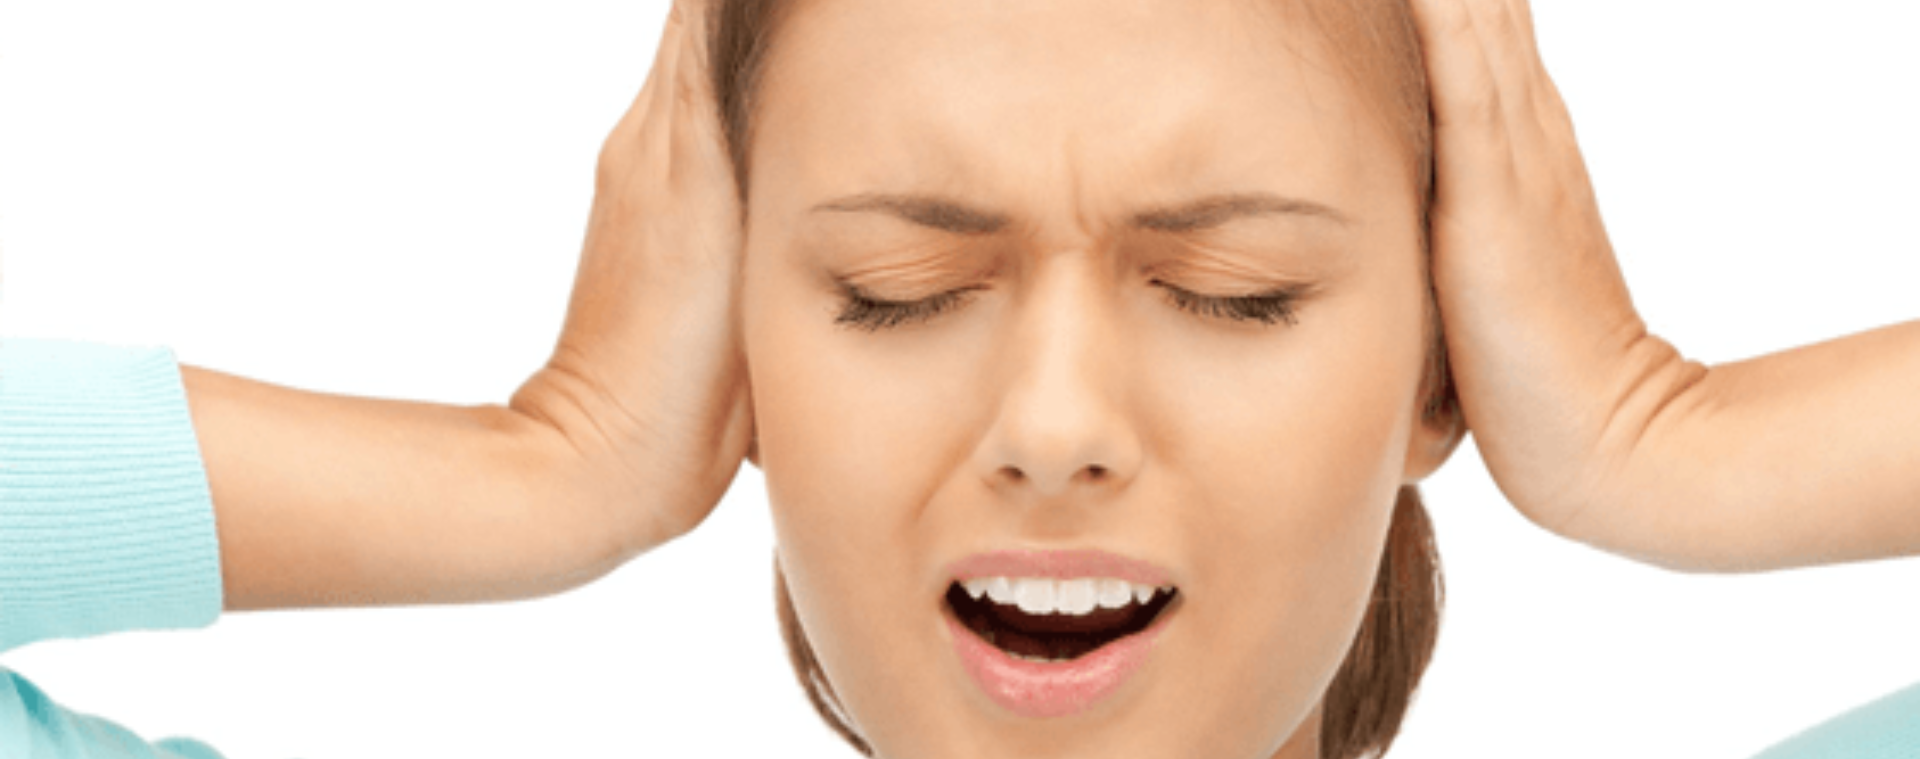 Clogged ear feeling: what causes it?